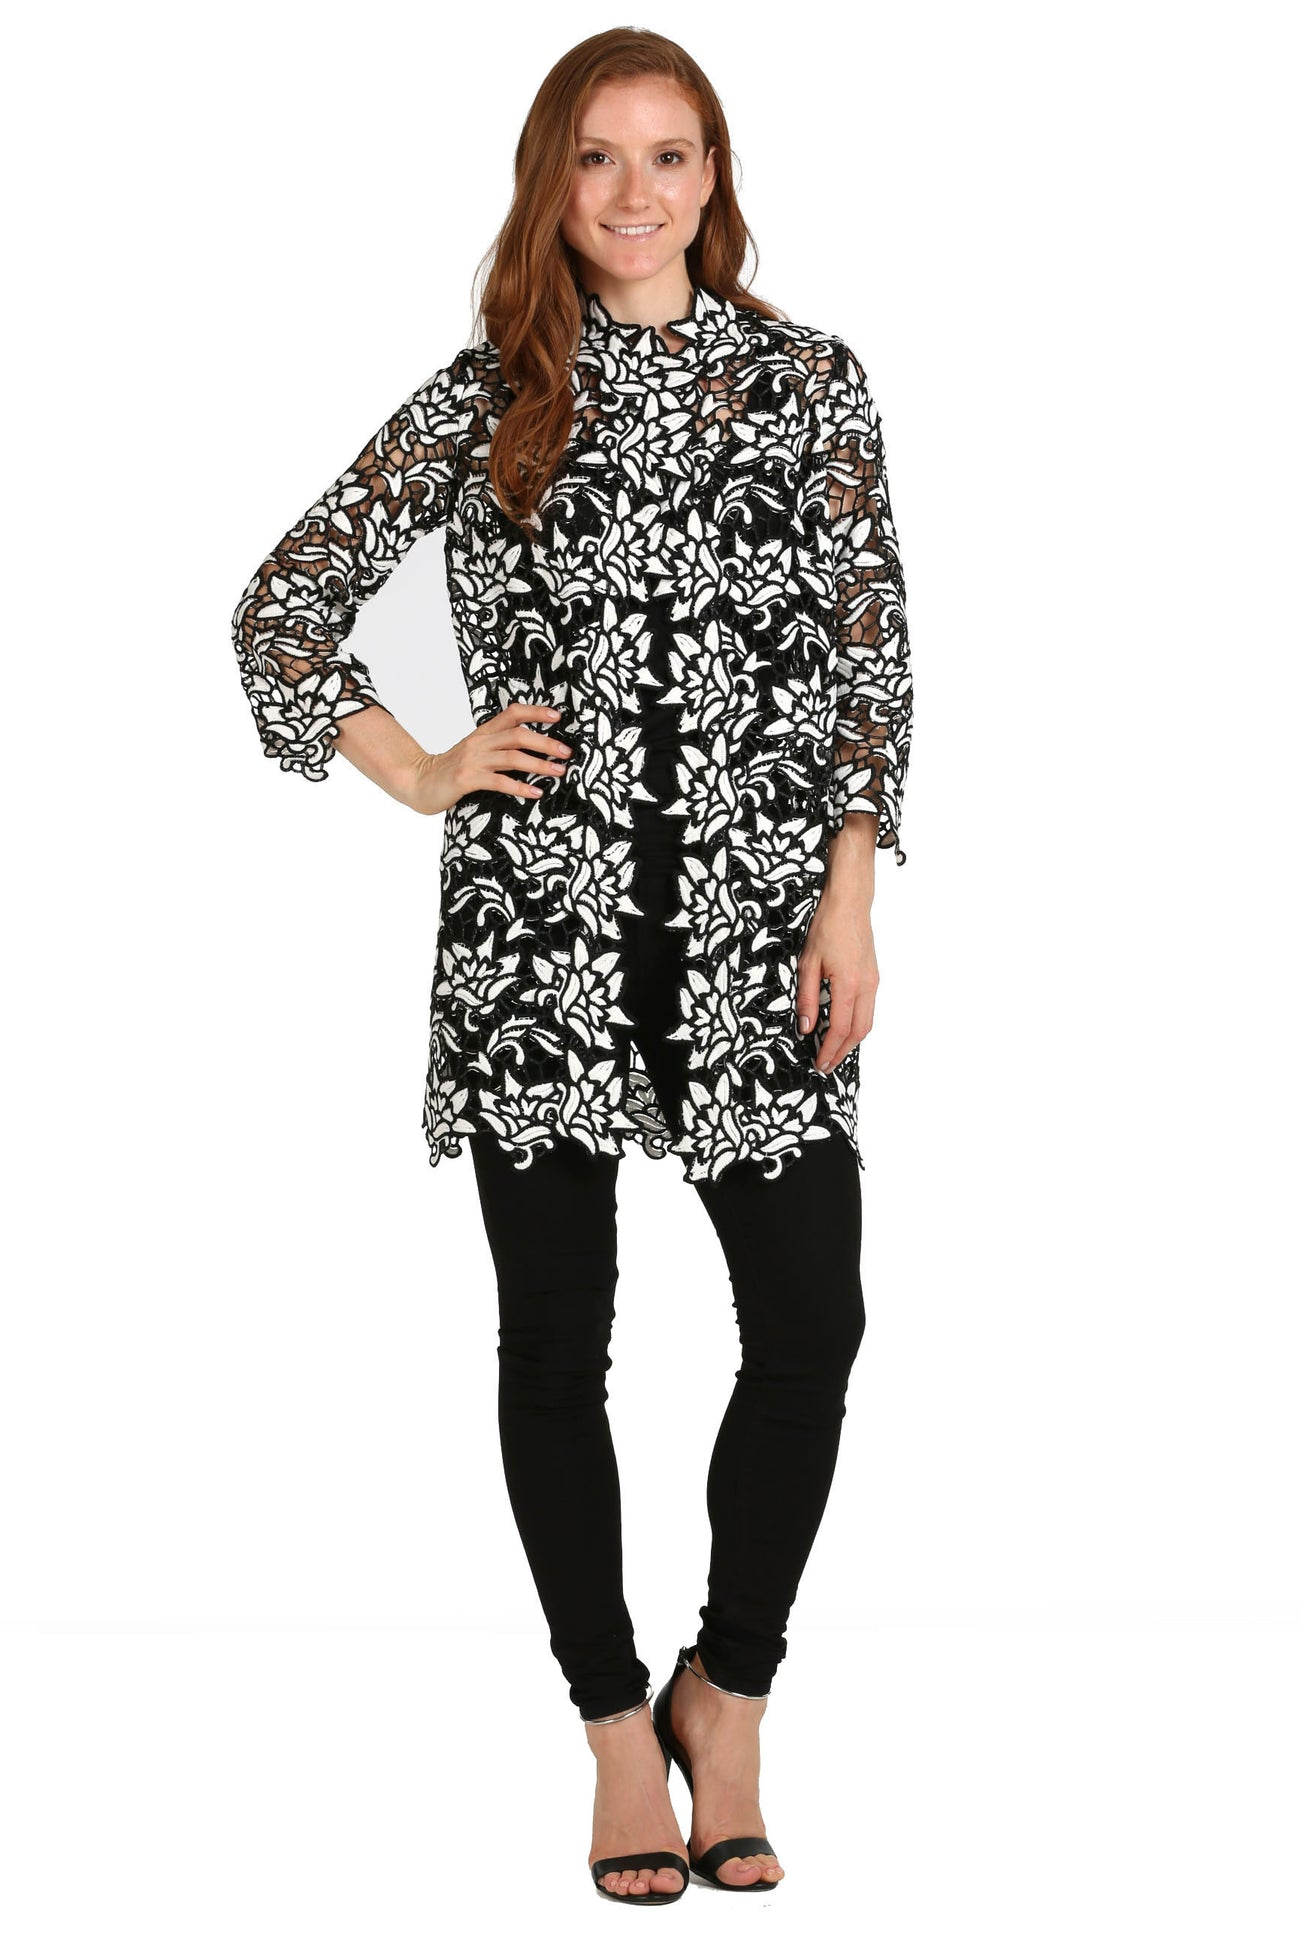 Floral Black & White Lace Jacket